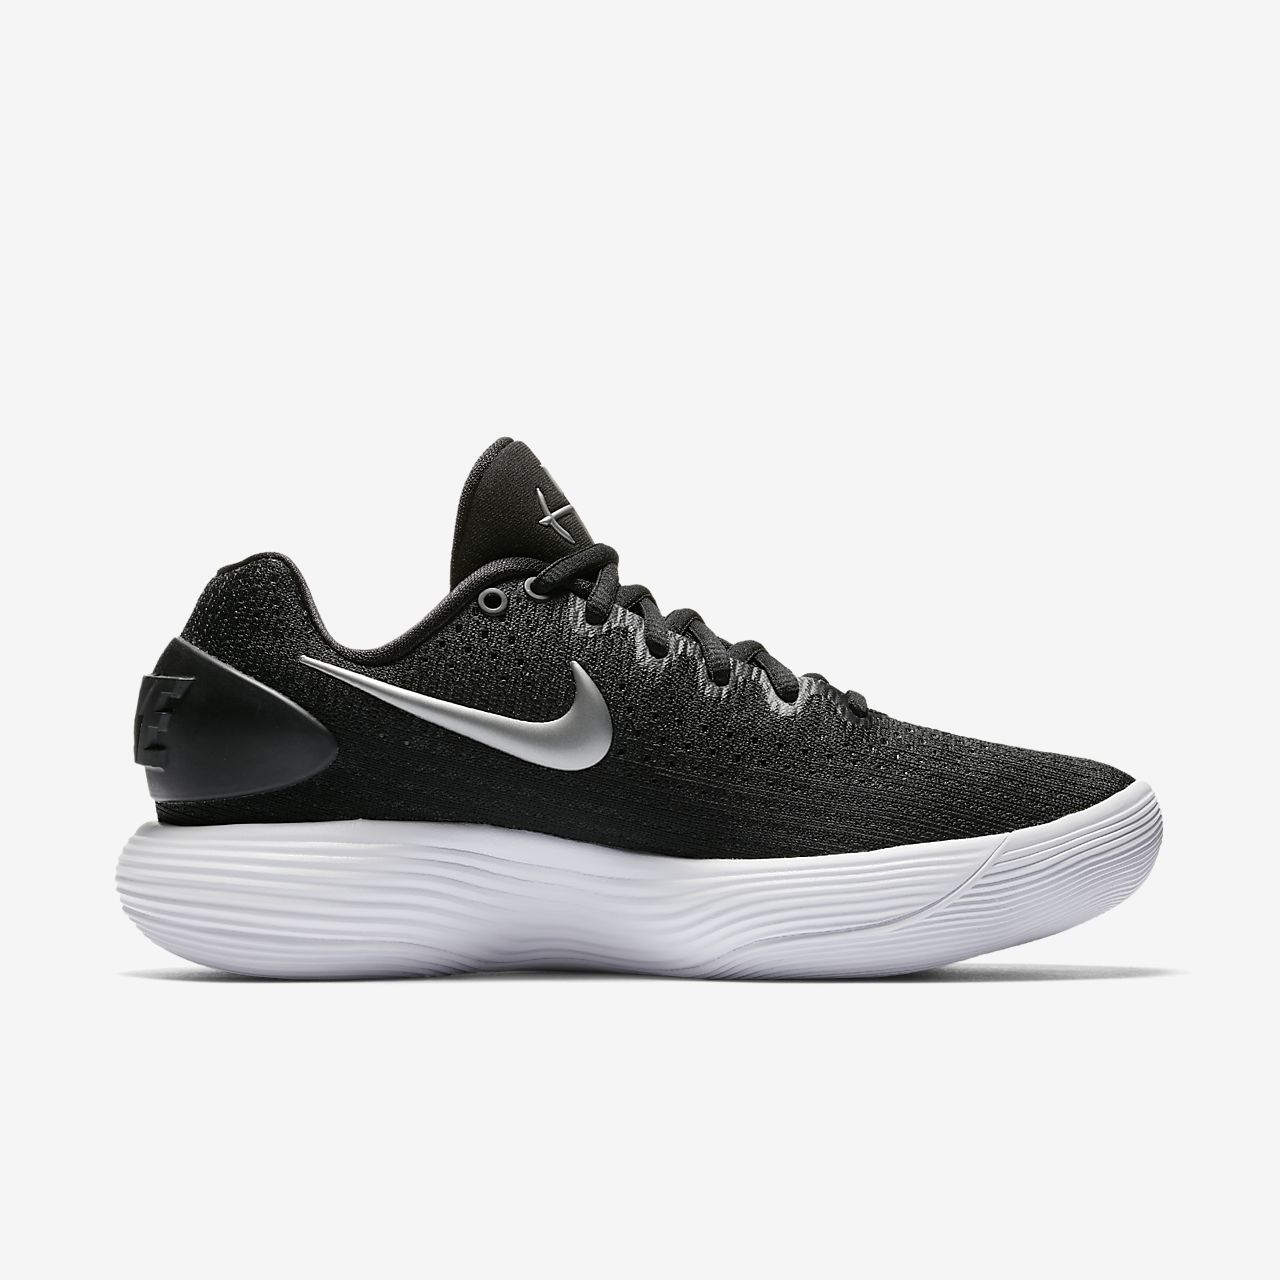 the latest 4cdf0 66299 ... promo code for nike hyperdunk 2017 low team c9bc5 04587 ...